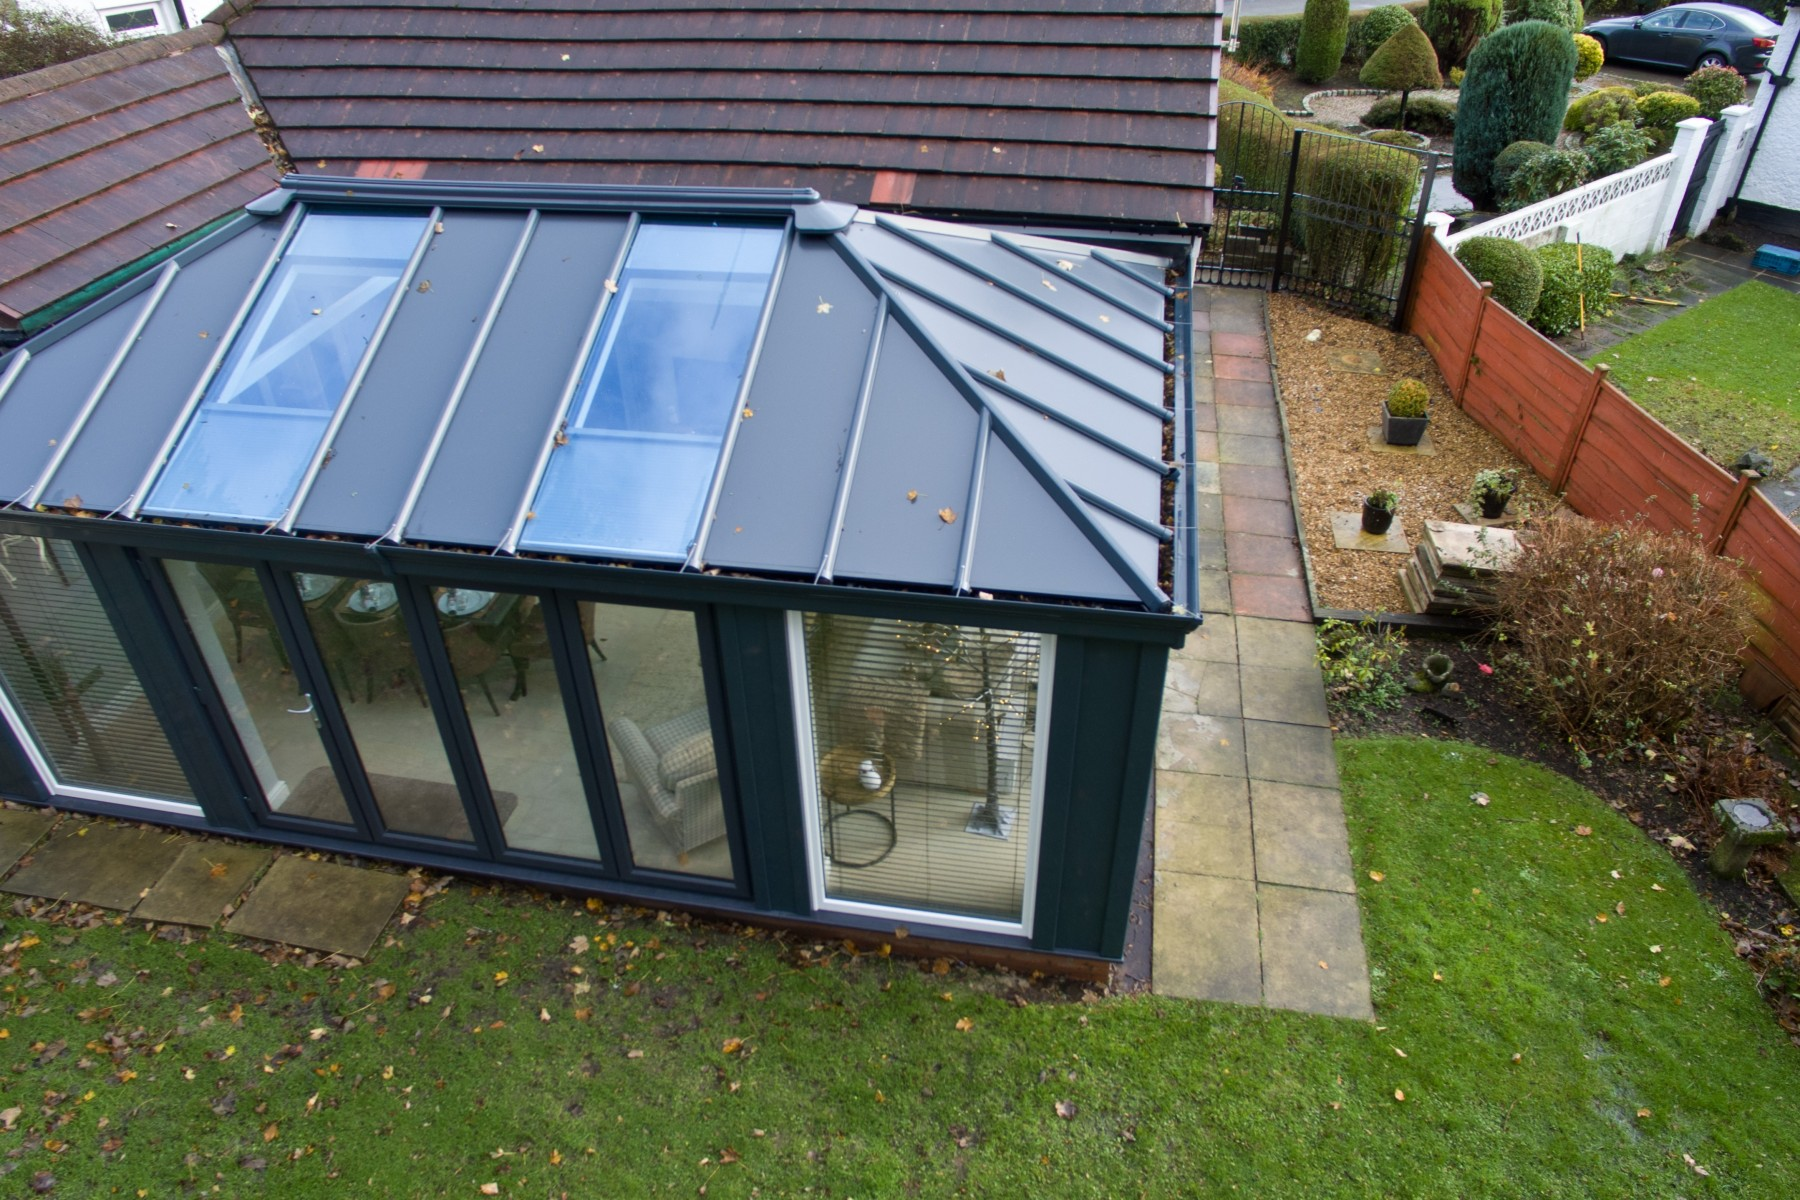 Livinroof Conservatory Roof Hybrid Conservatory Roofs Uk